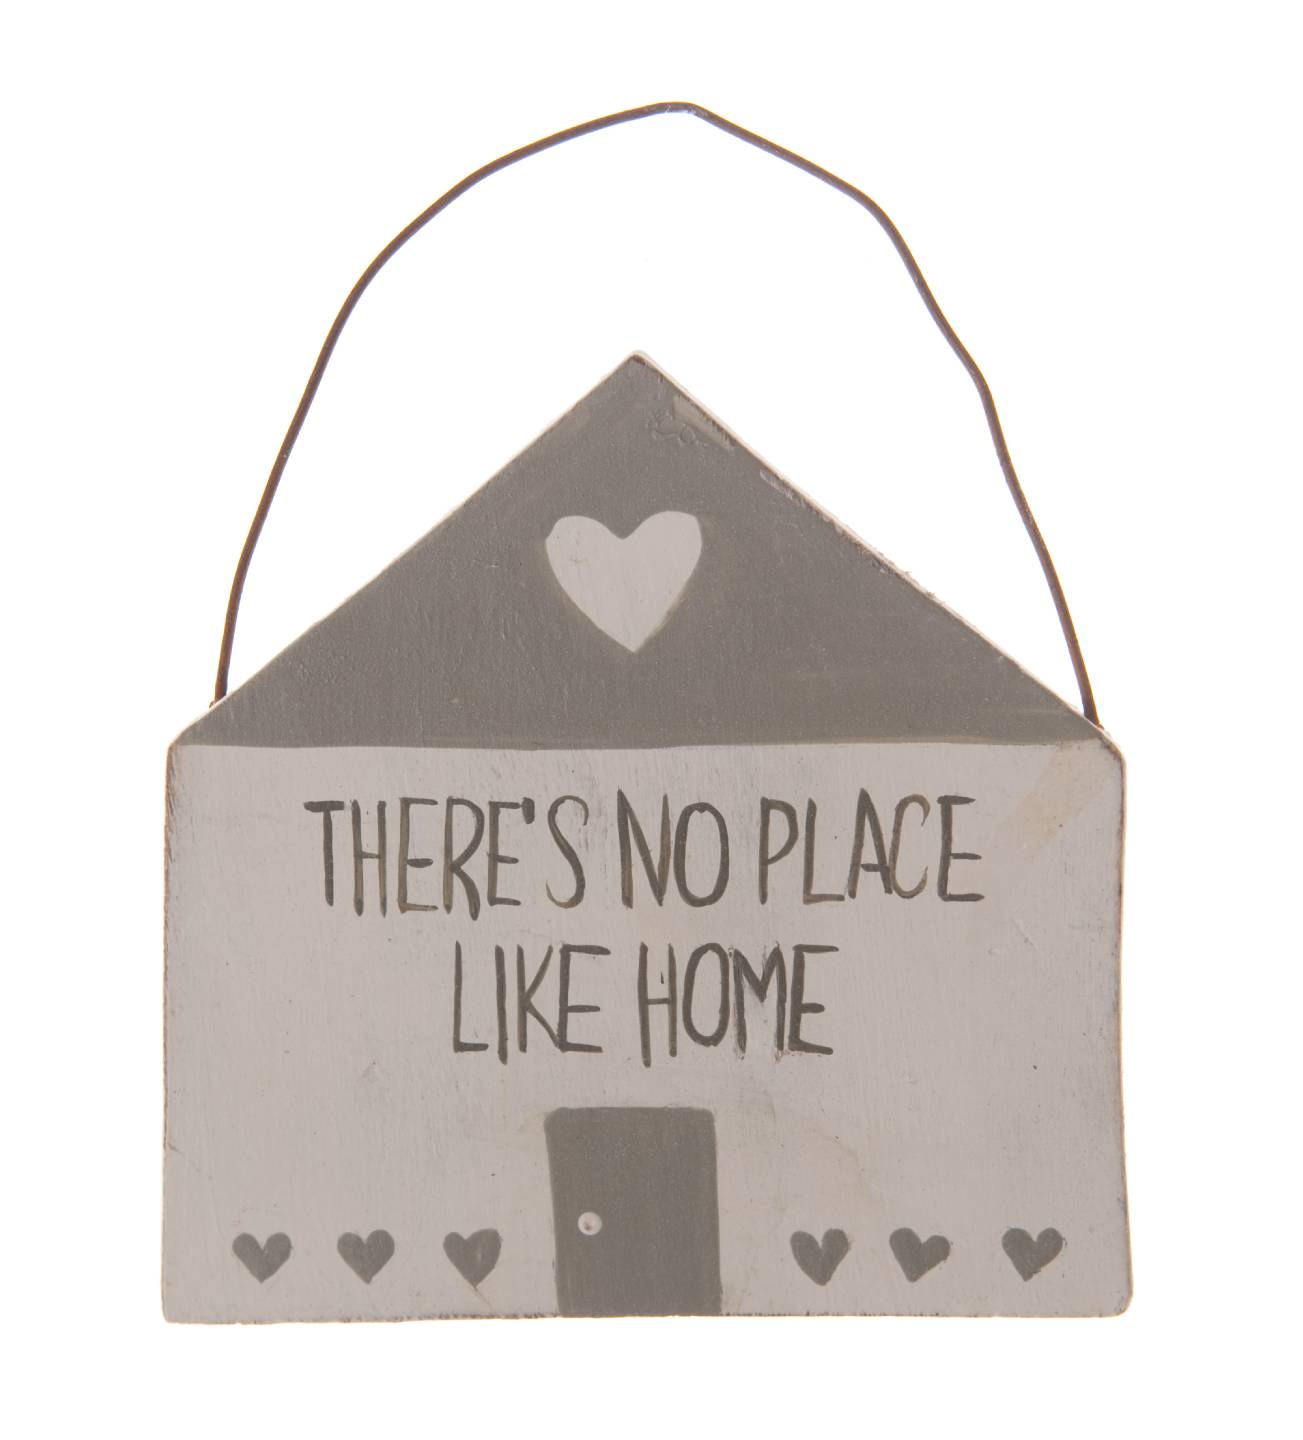 New shabbychic hanging home sweet home sign plaque heart for New home sign